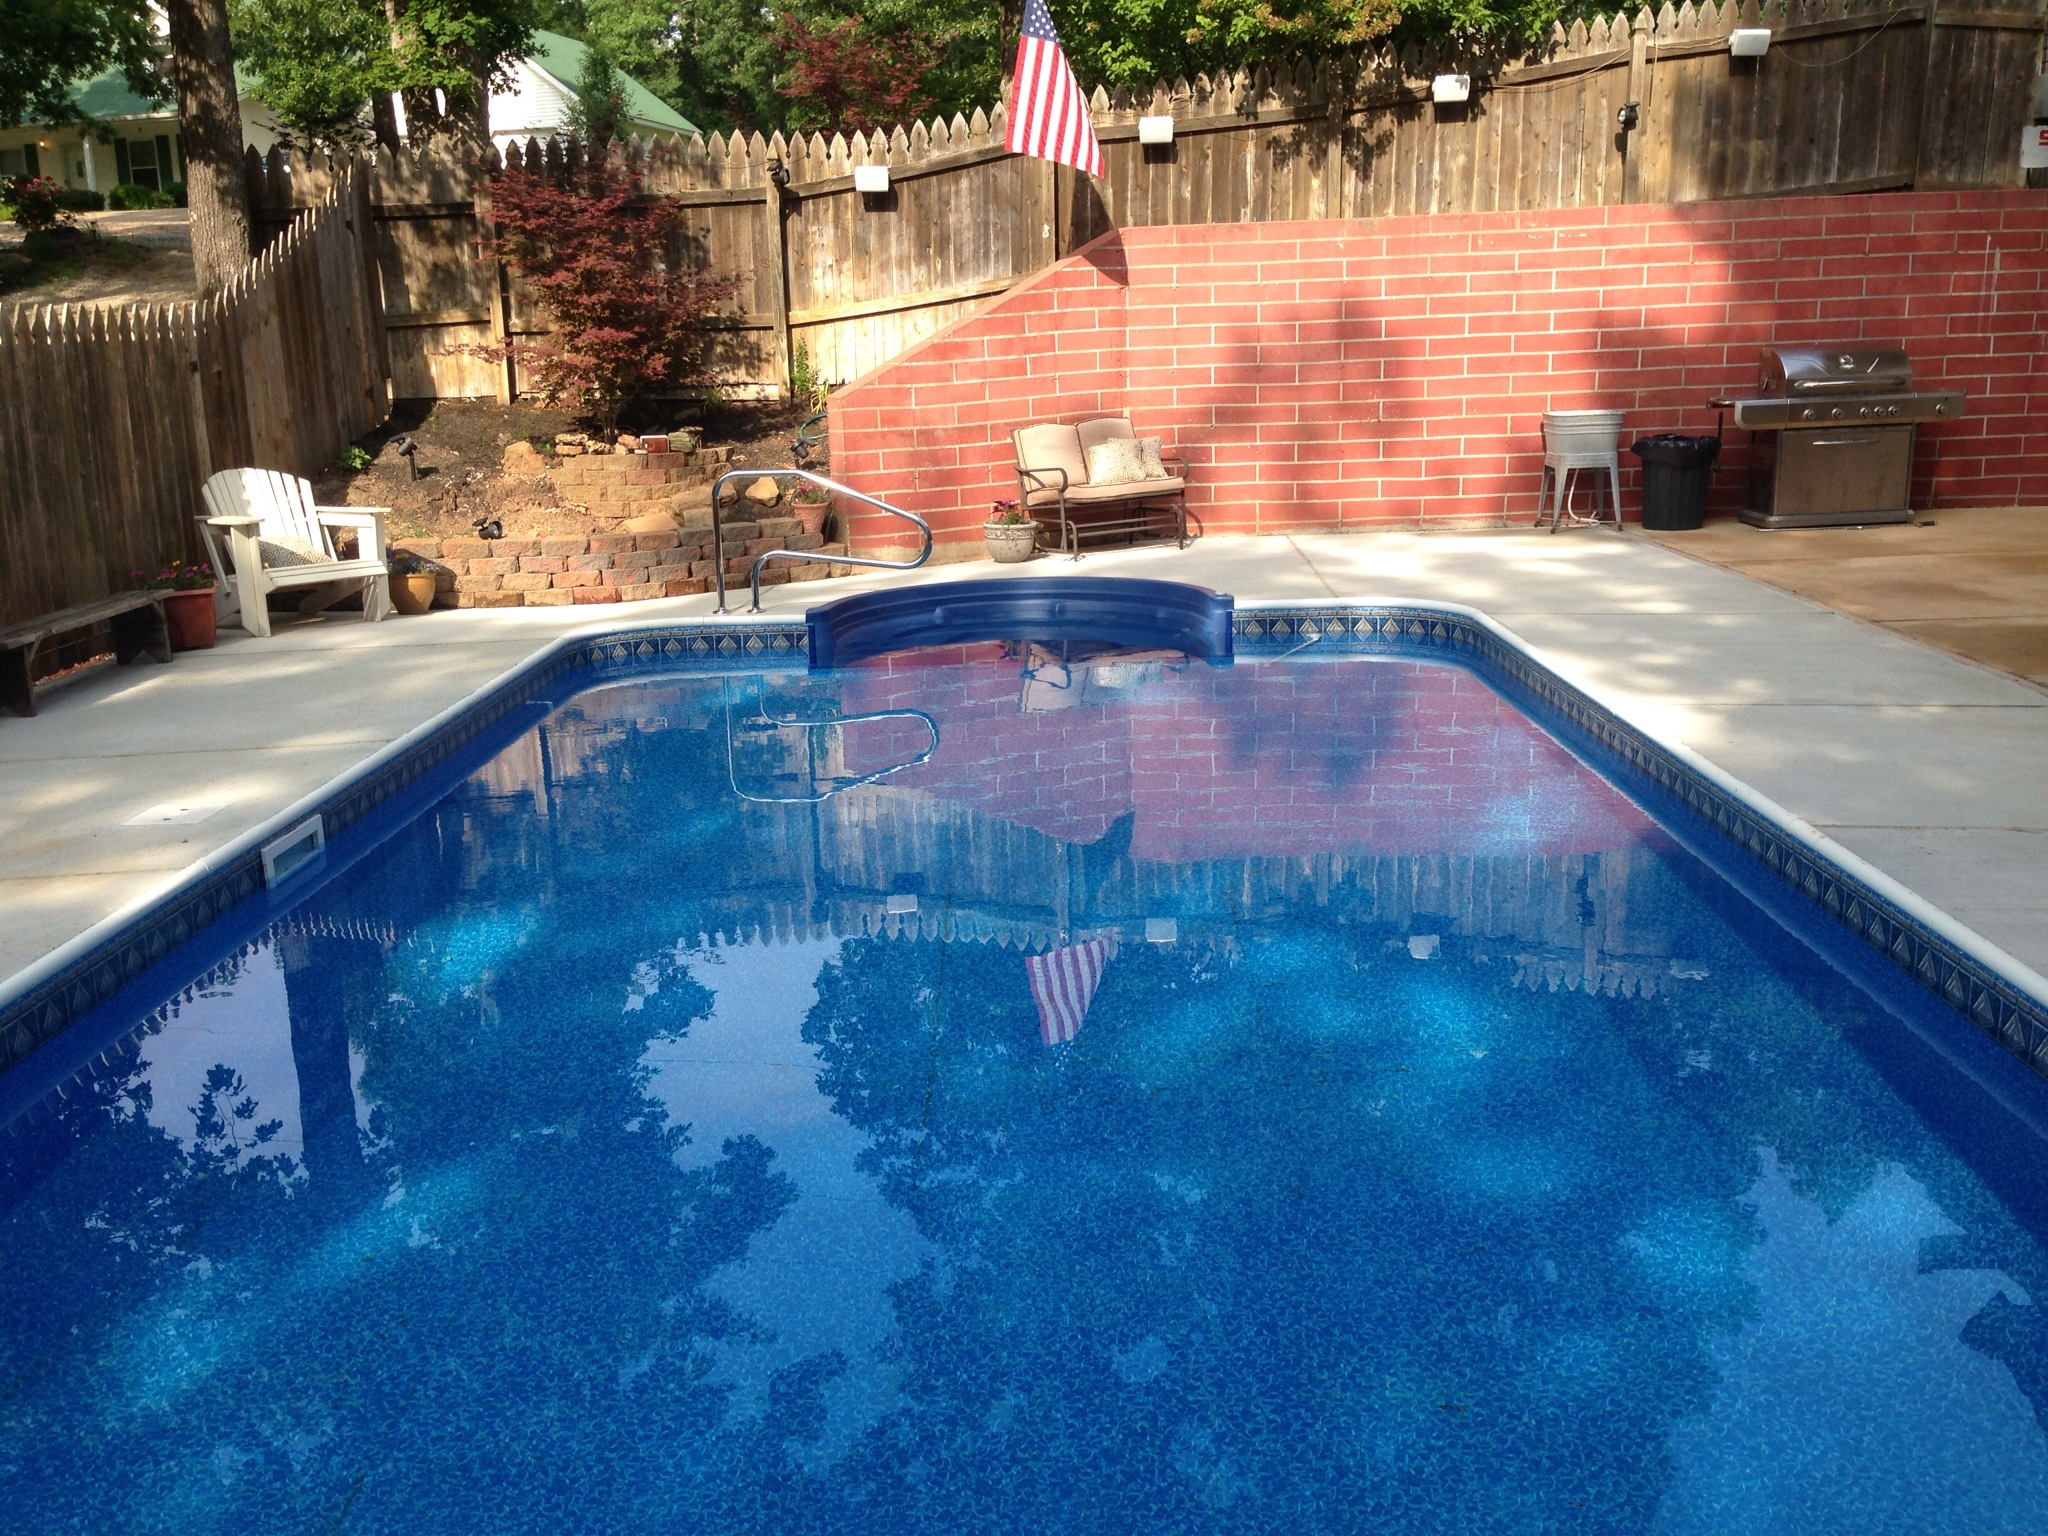 Hydra pools custom 16x32 rectangle pool for Custom inground swimming pools